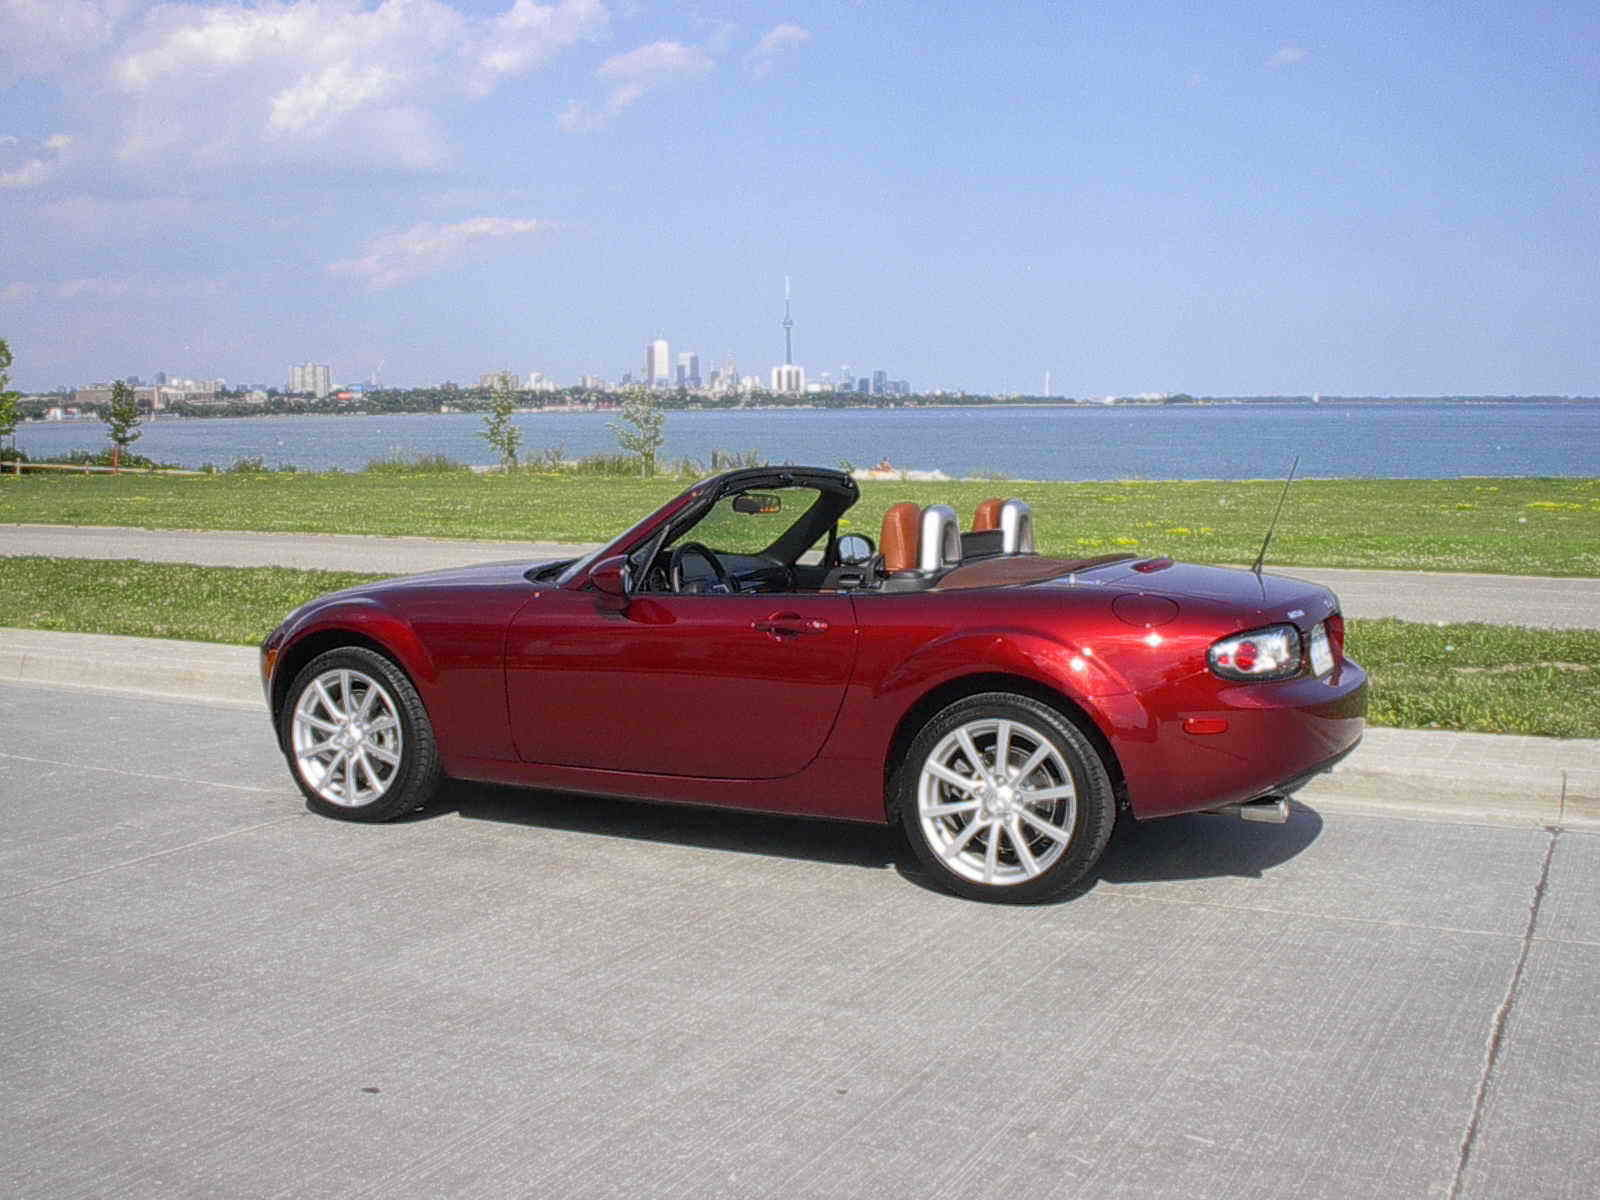 2006 mazda mx 5 gt picture 108412 car review top speed. Black Bedroom Furniture Sets. Home Design Ideas